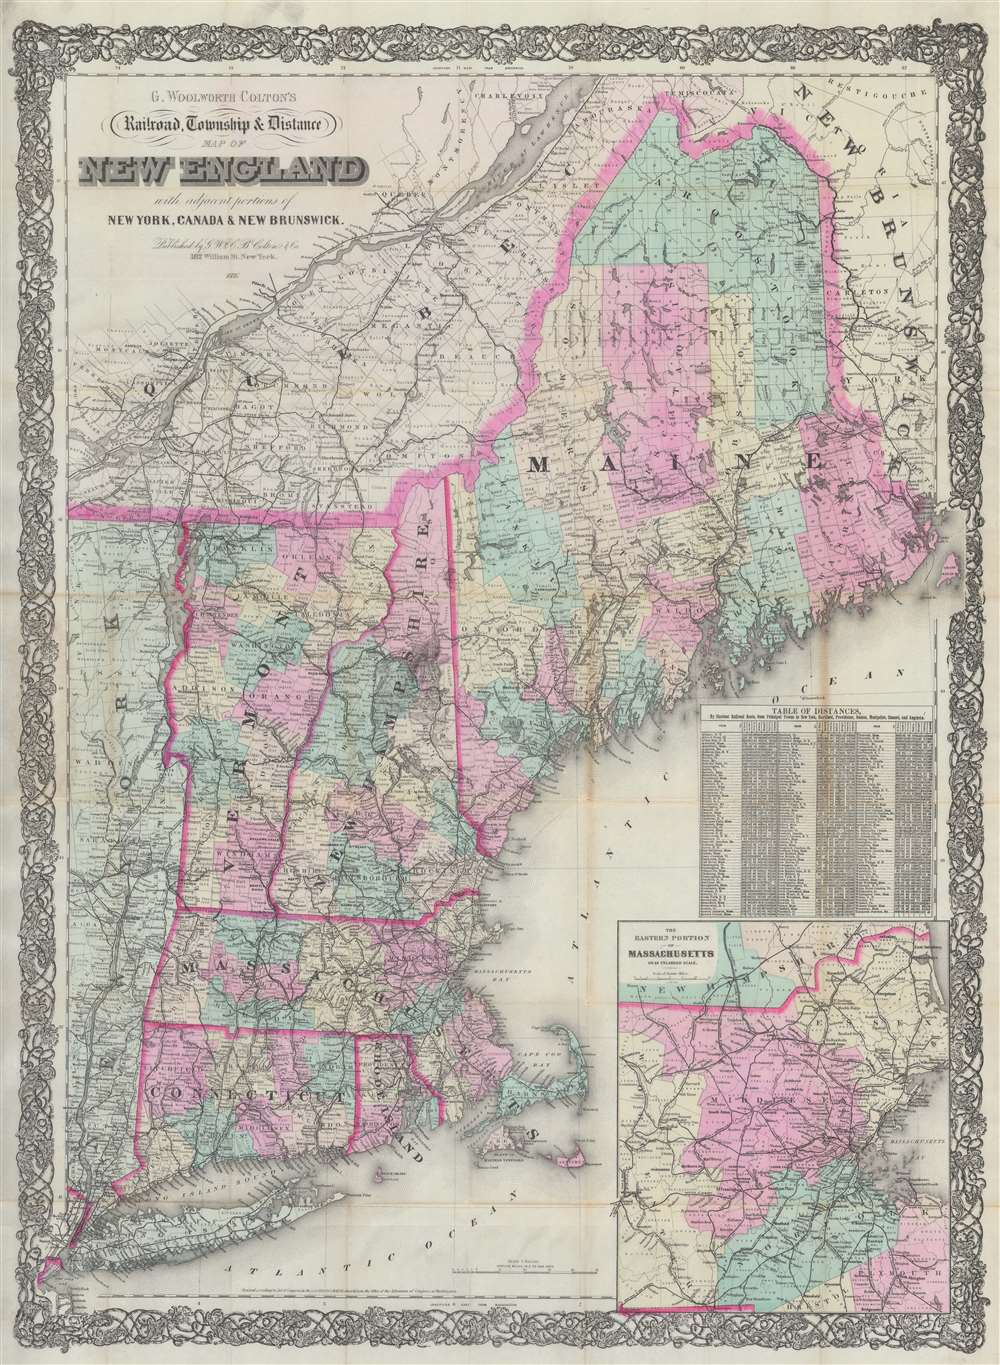 G. Woolworth Colton's Railroad, Township and Distance Map of New England with adjacent portions of New York, Canada and New Brunswick. - Main View